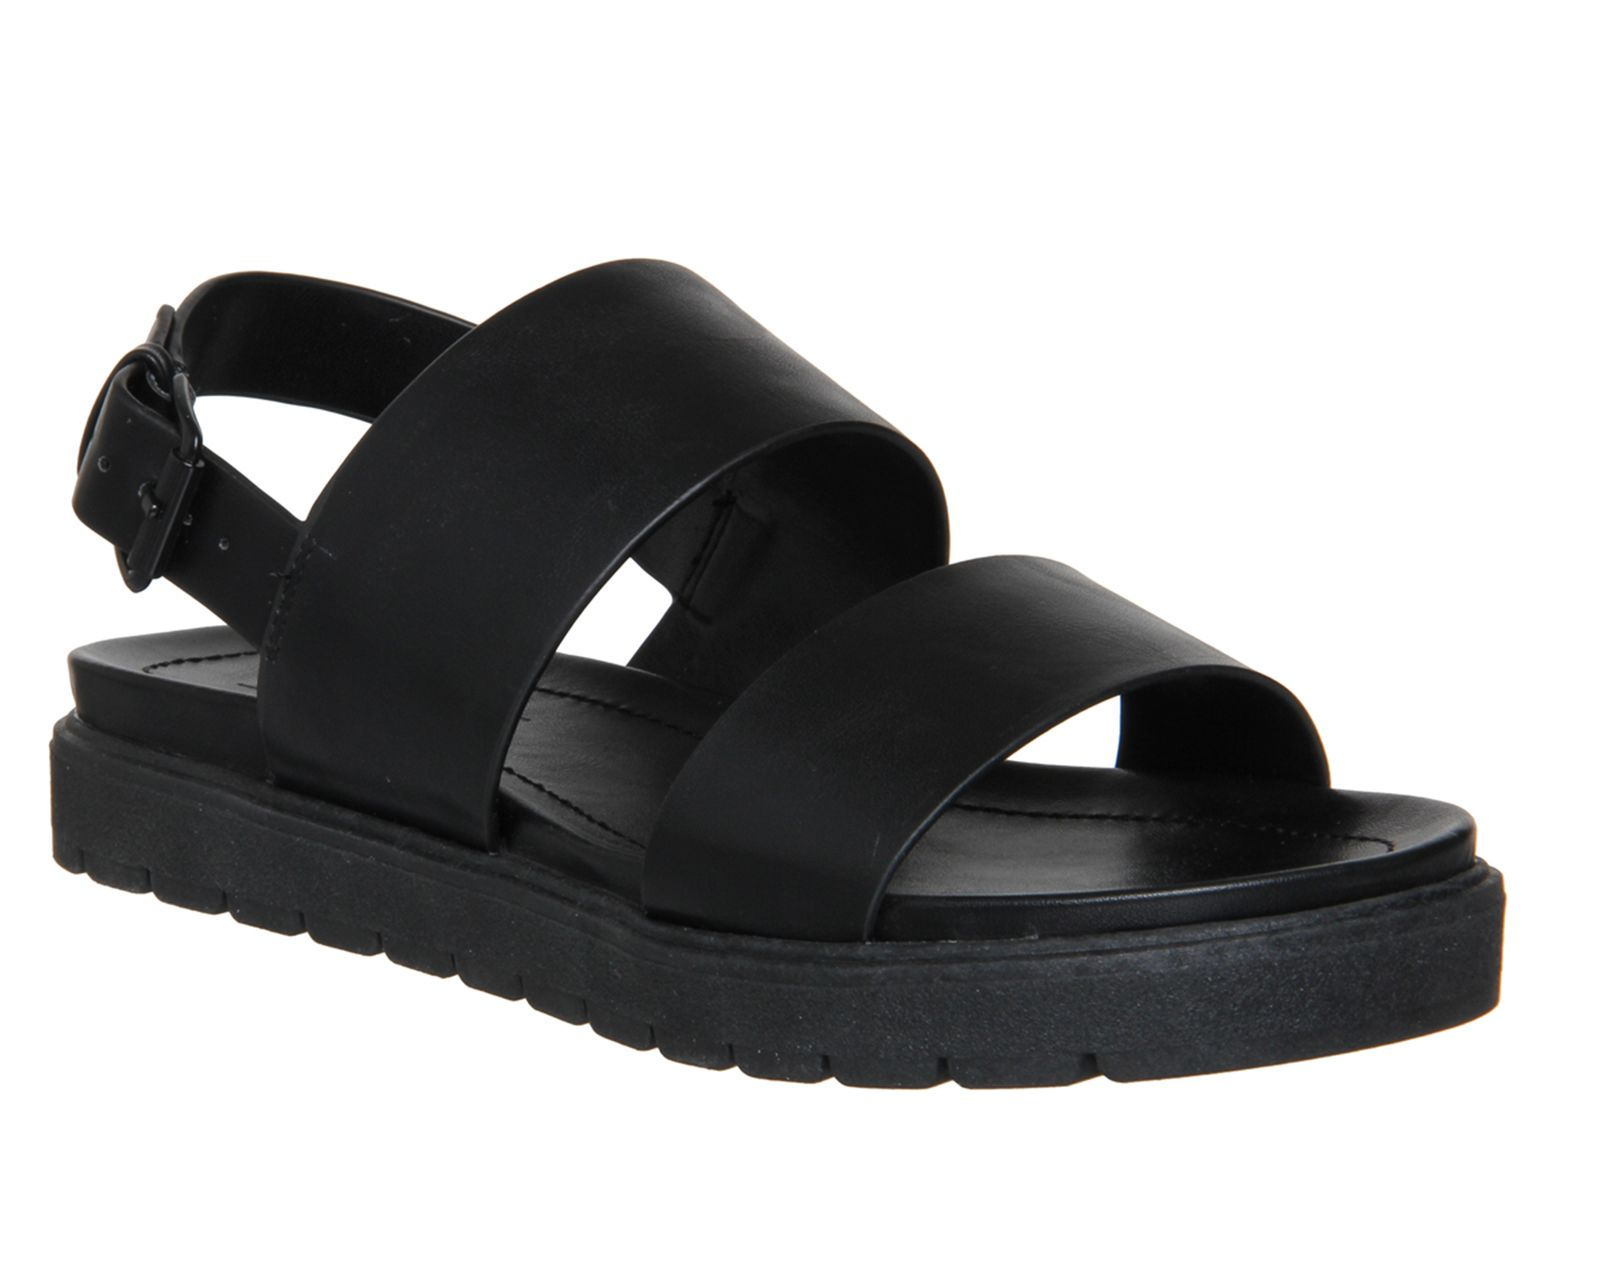 5c6bbe937 Buy Black Office Optic Double Strap Sling Sandals from OFFICE.co.uk ...